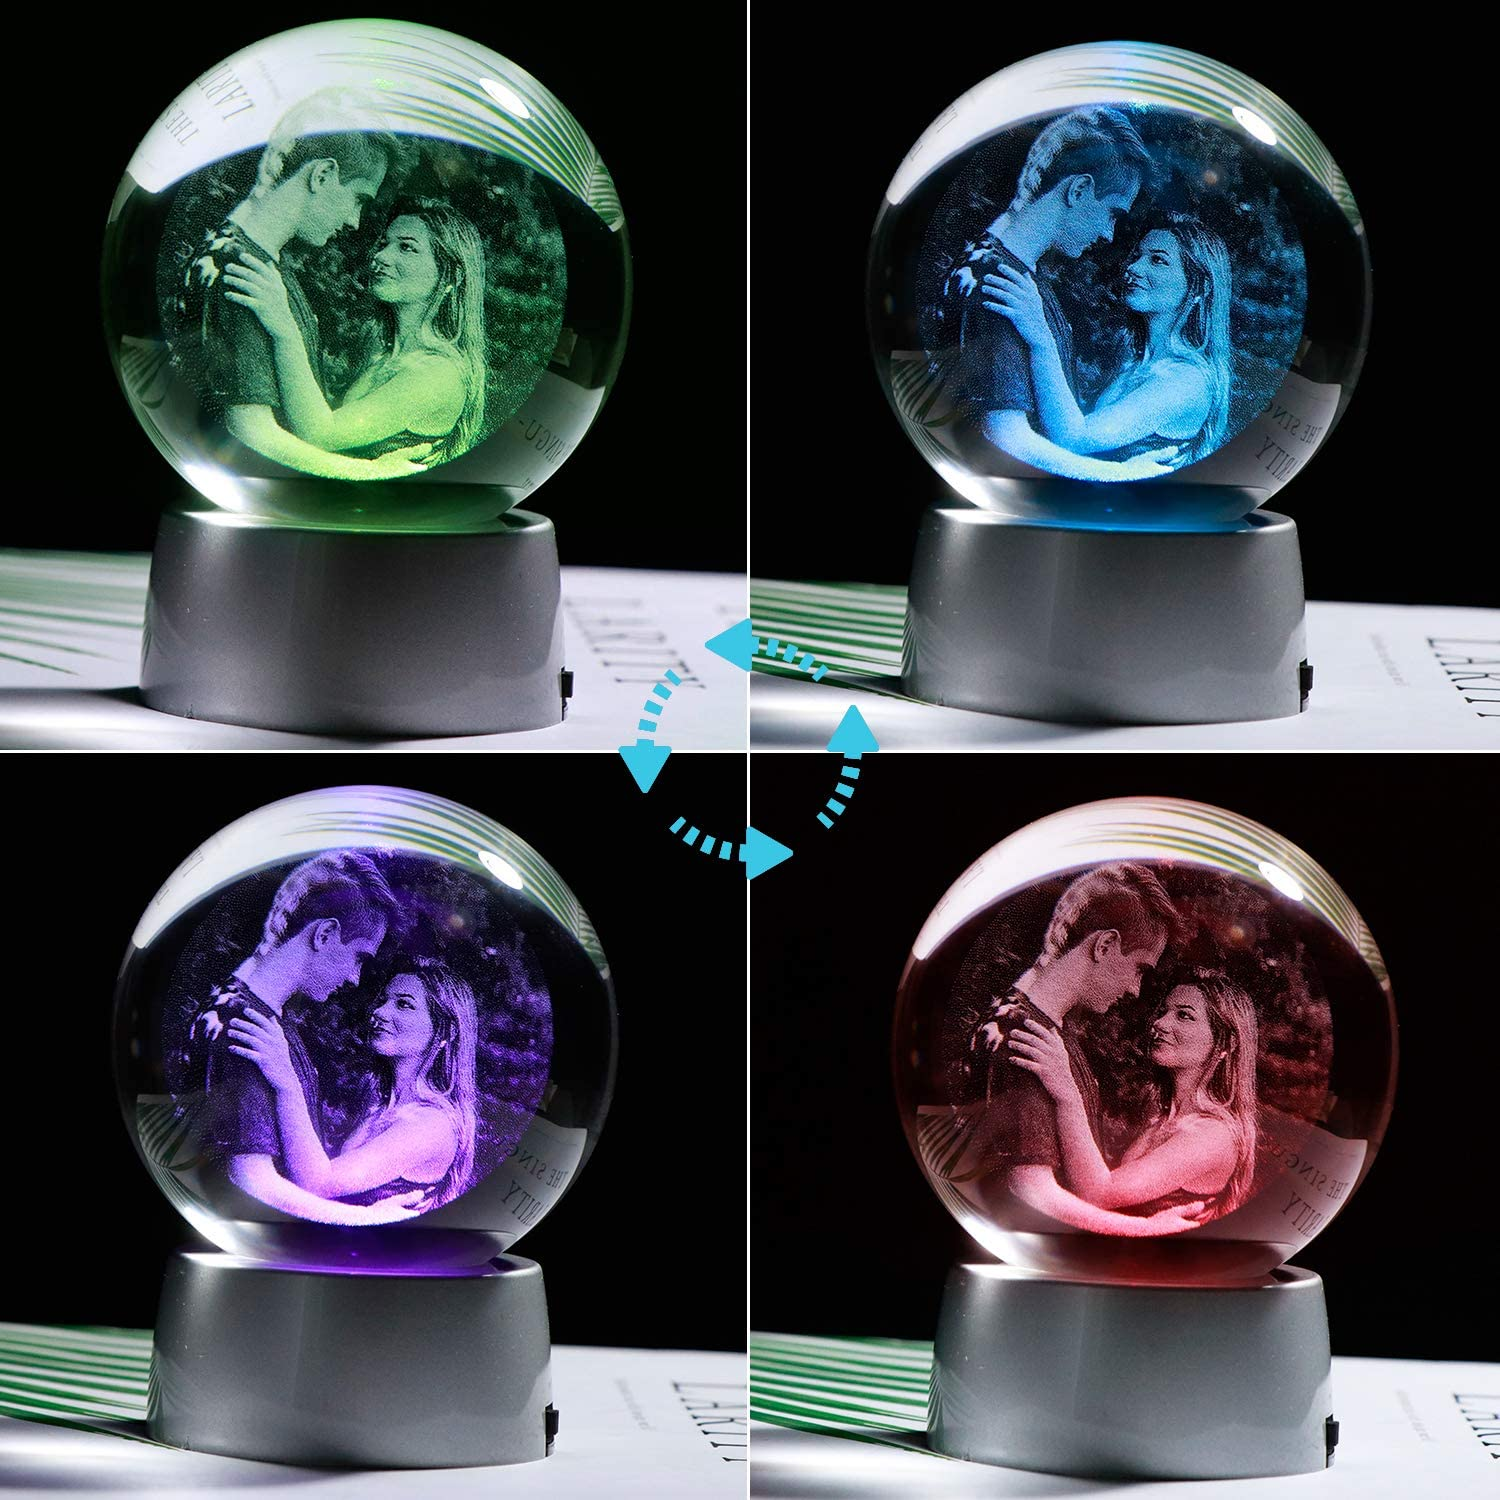 YWHL Personalized Photo 2D 70mm Crystal Ball with Colorful LED Base Etched Engraved Inside